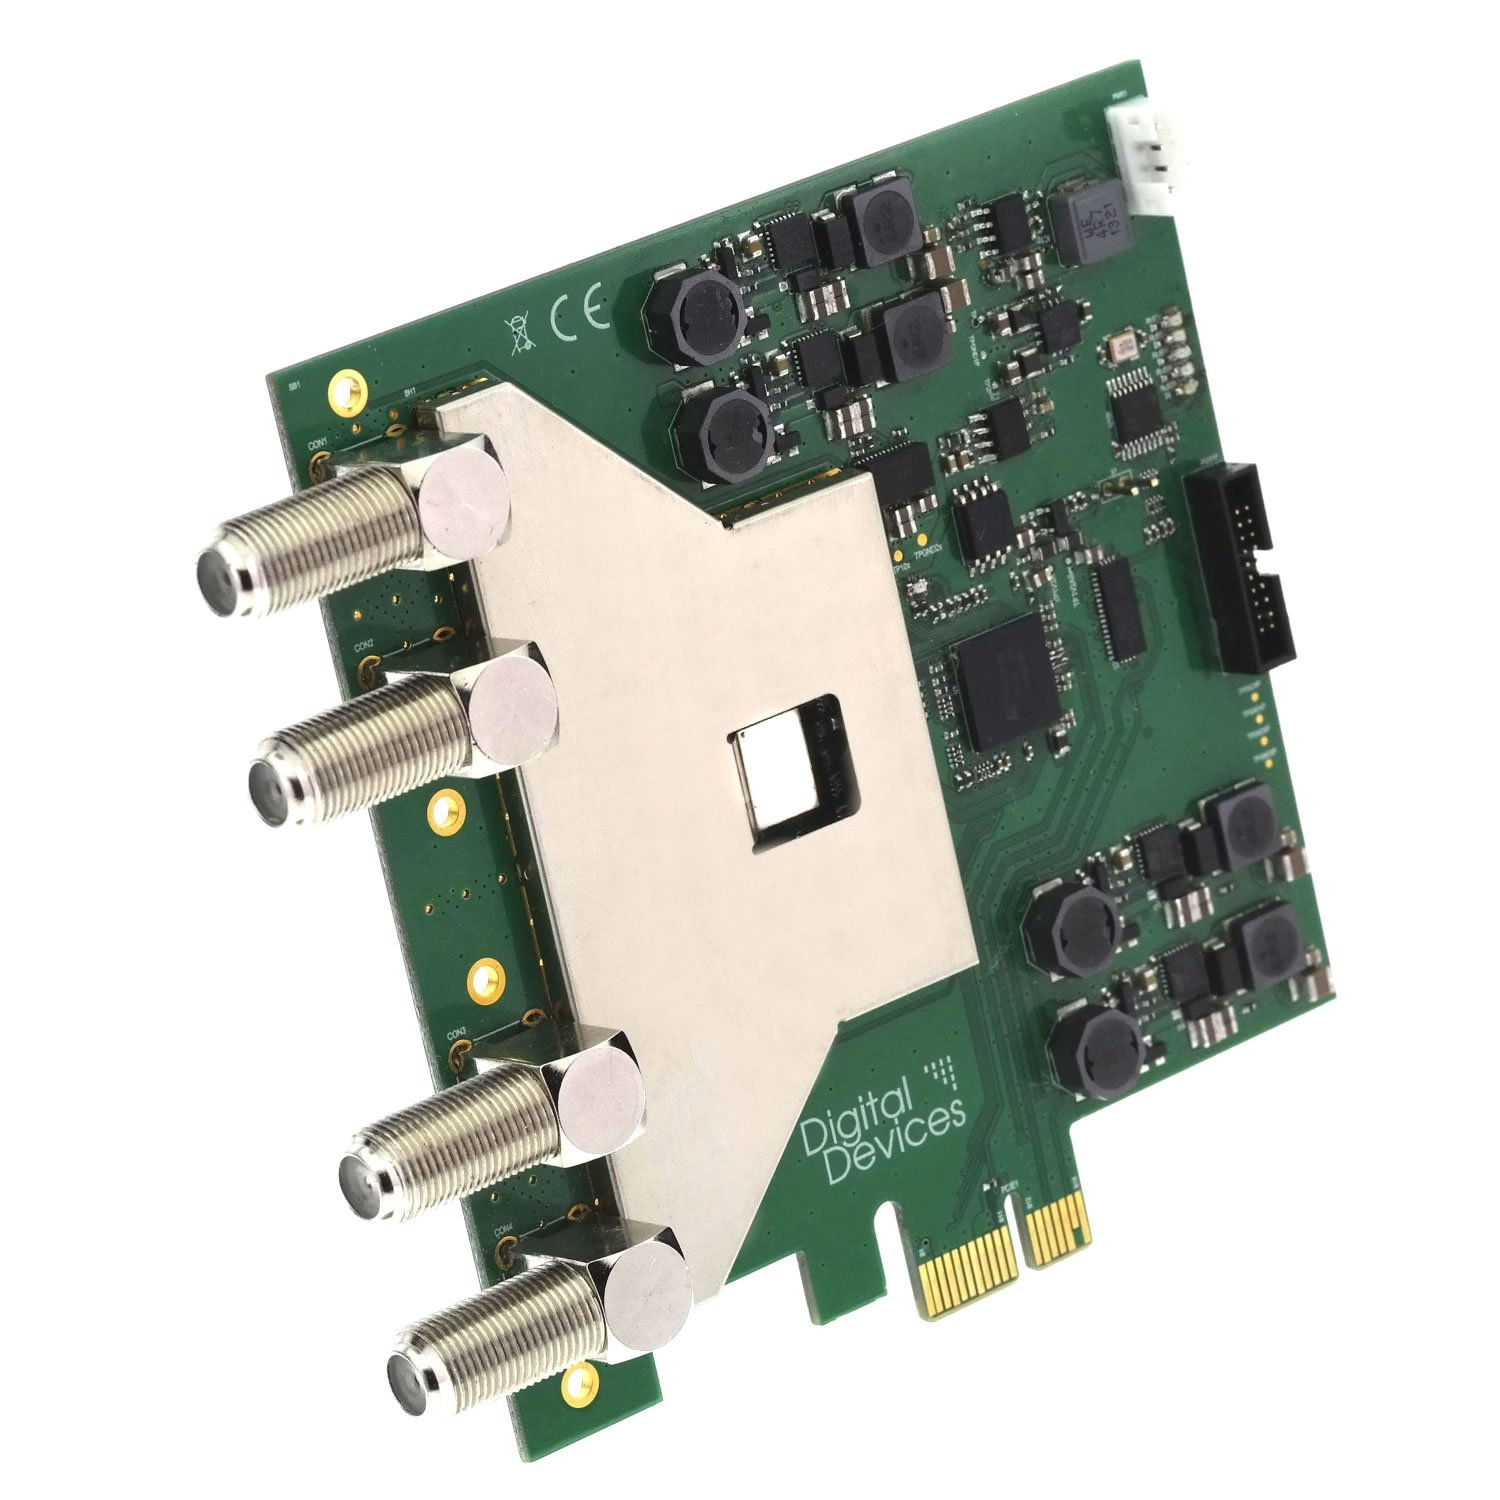 Digital Devices Max S8 TV-Card